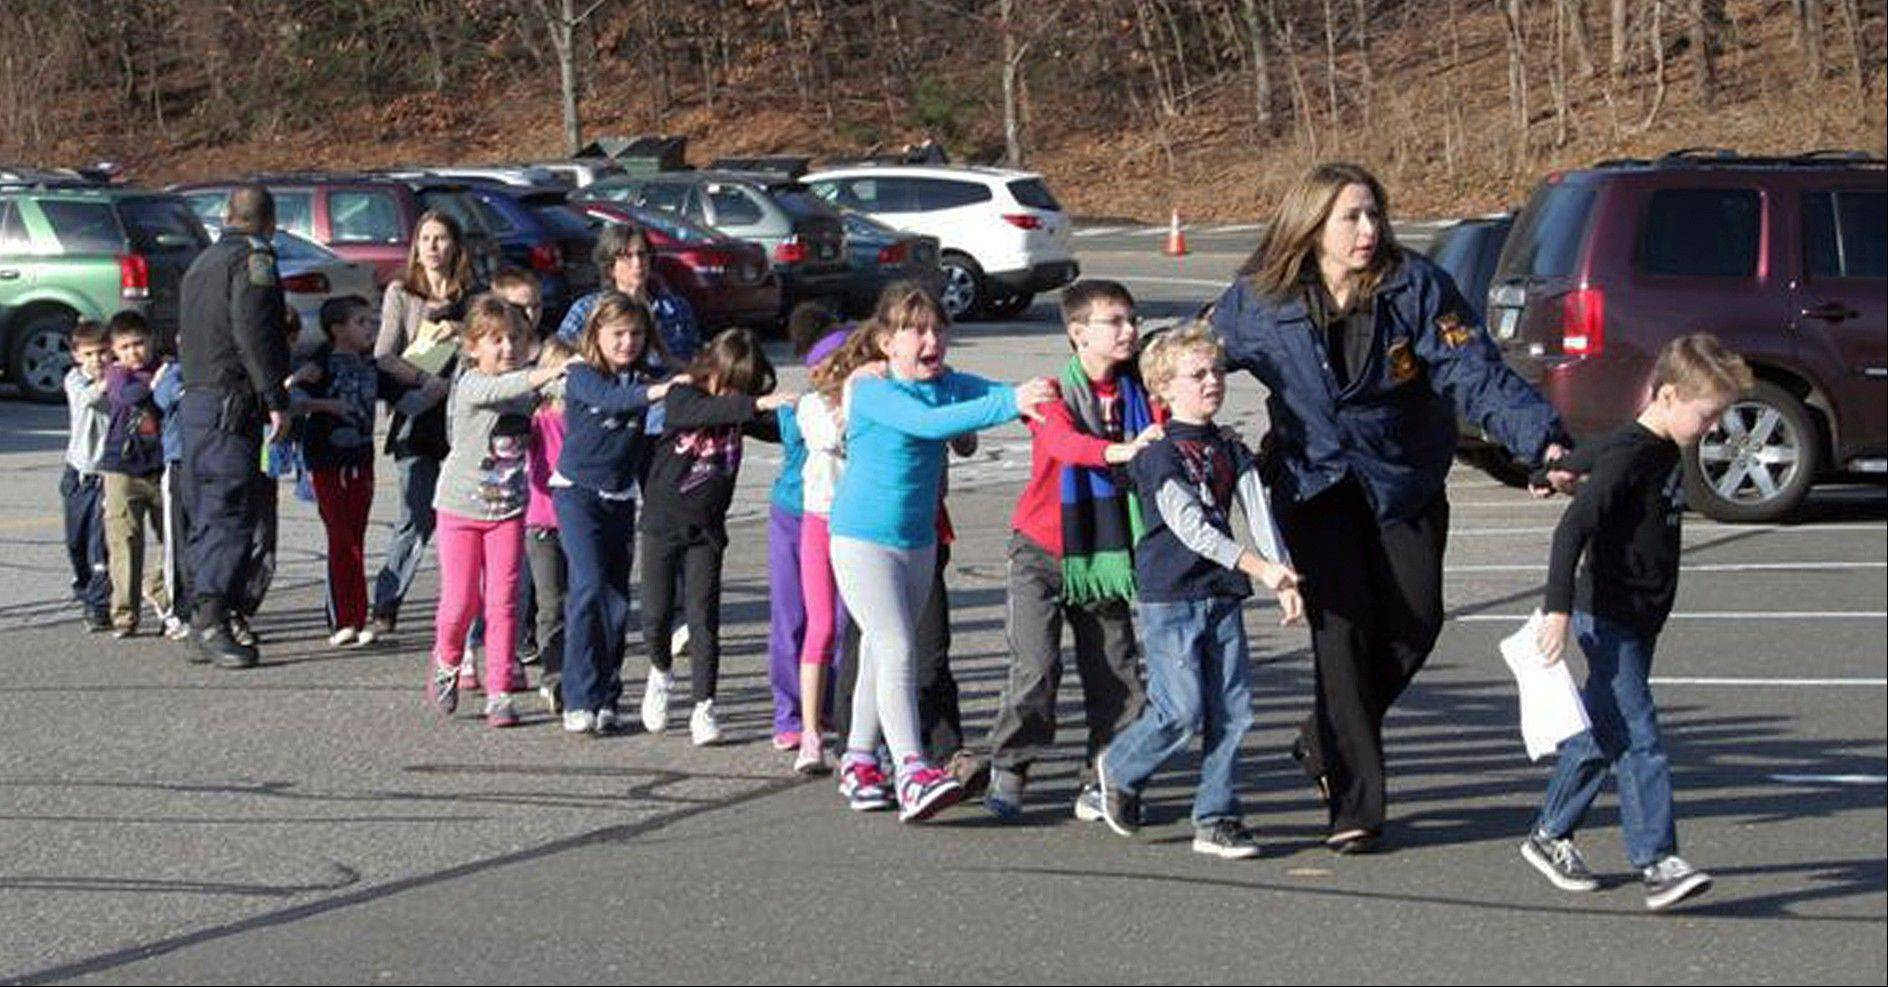 In this photo provided by the Newtown Bee, Connecticut State Police lead children from the Sandy Hook Elementary School in Newtown, Conn., following the shooting there Dec. 14, 2012.